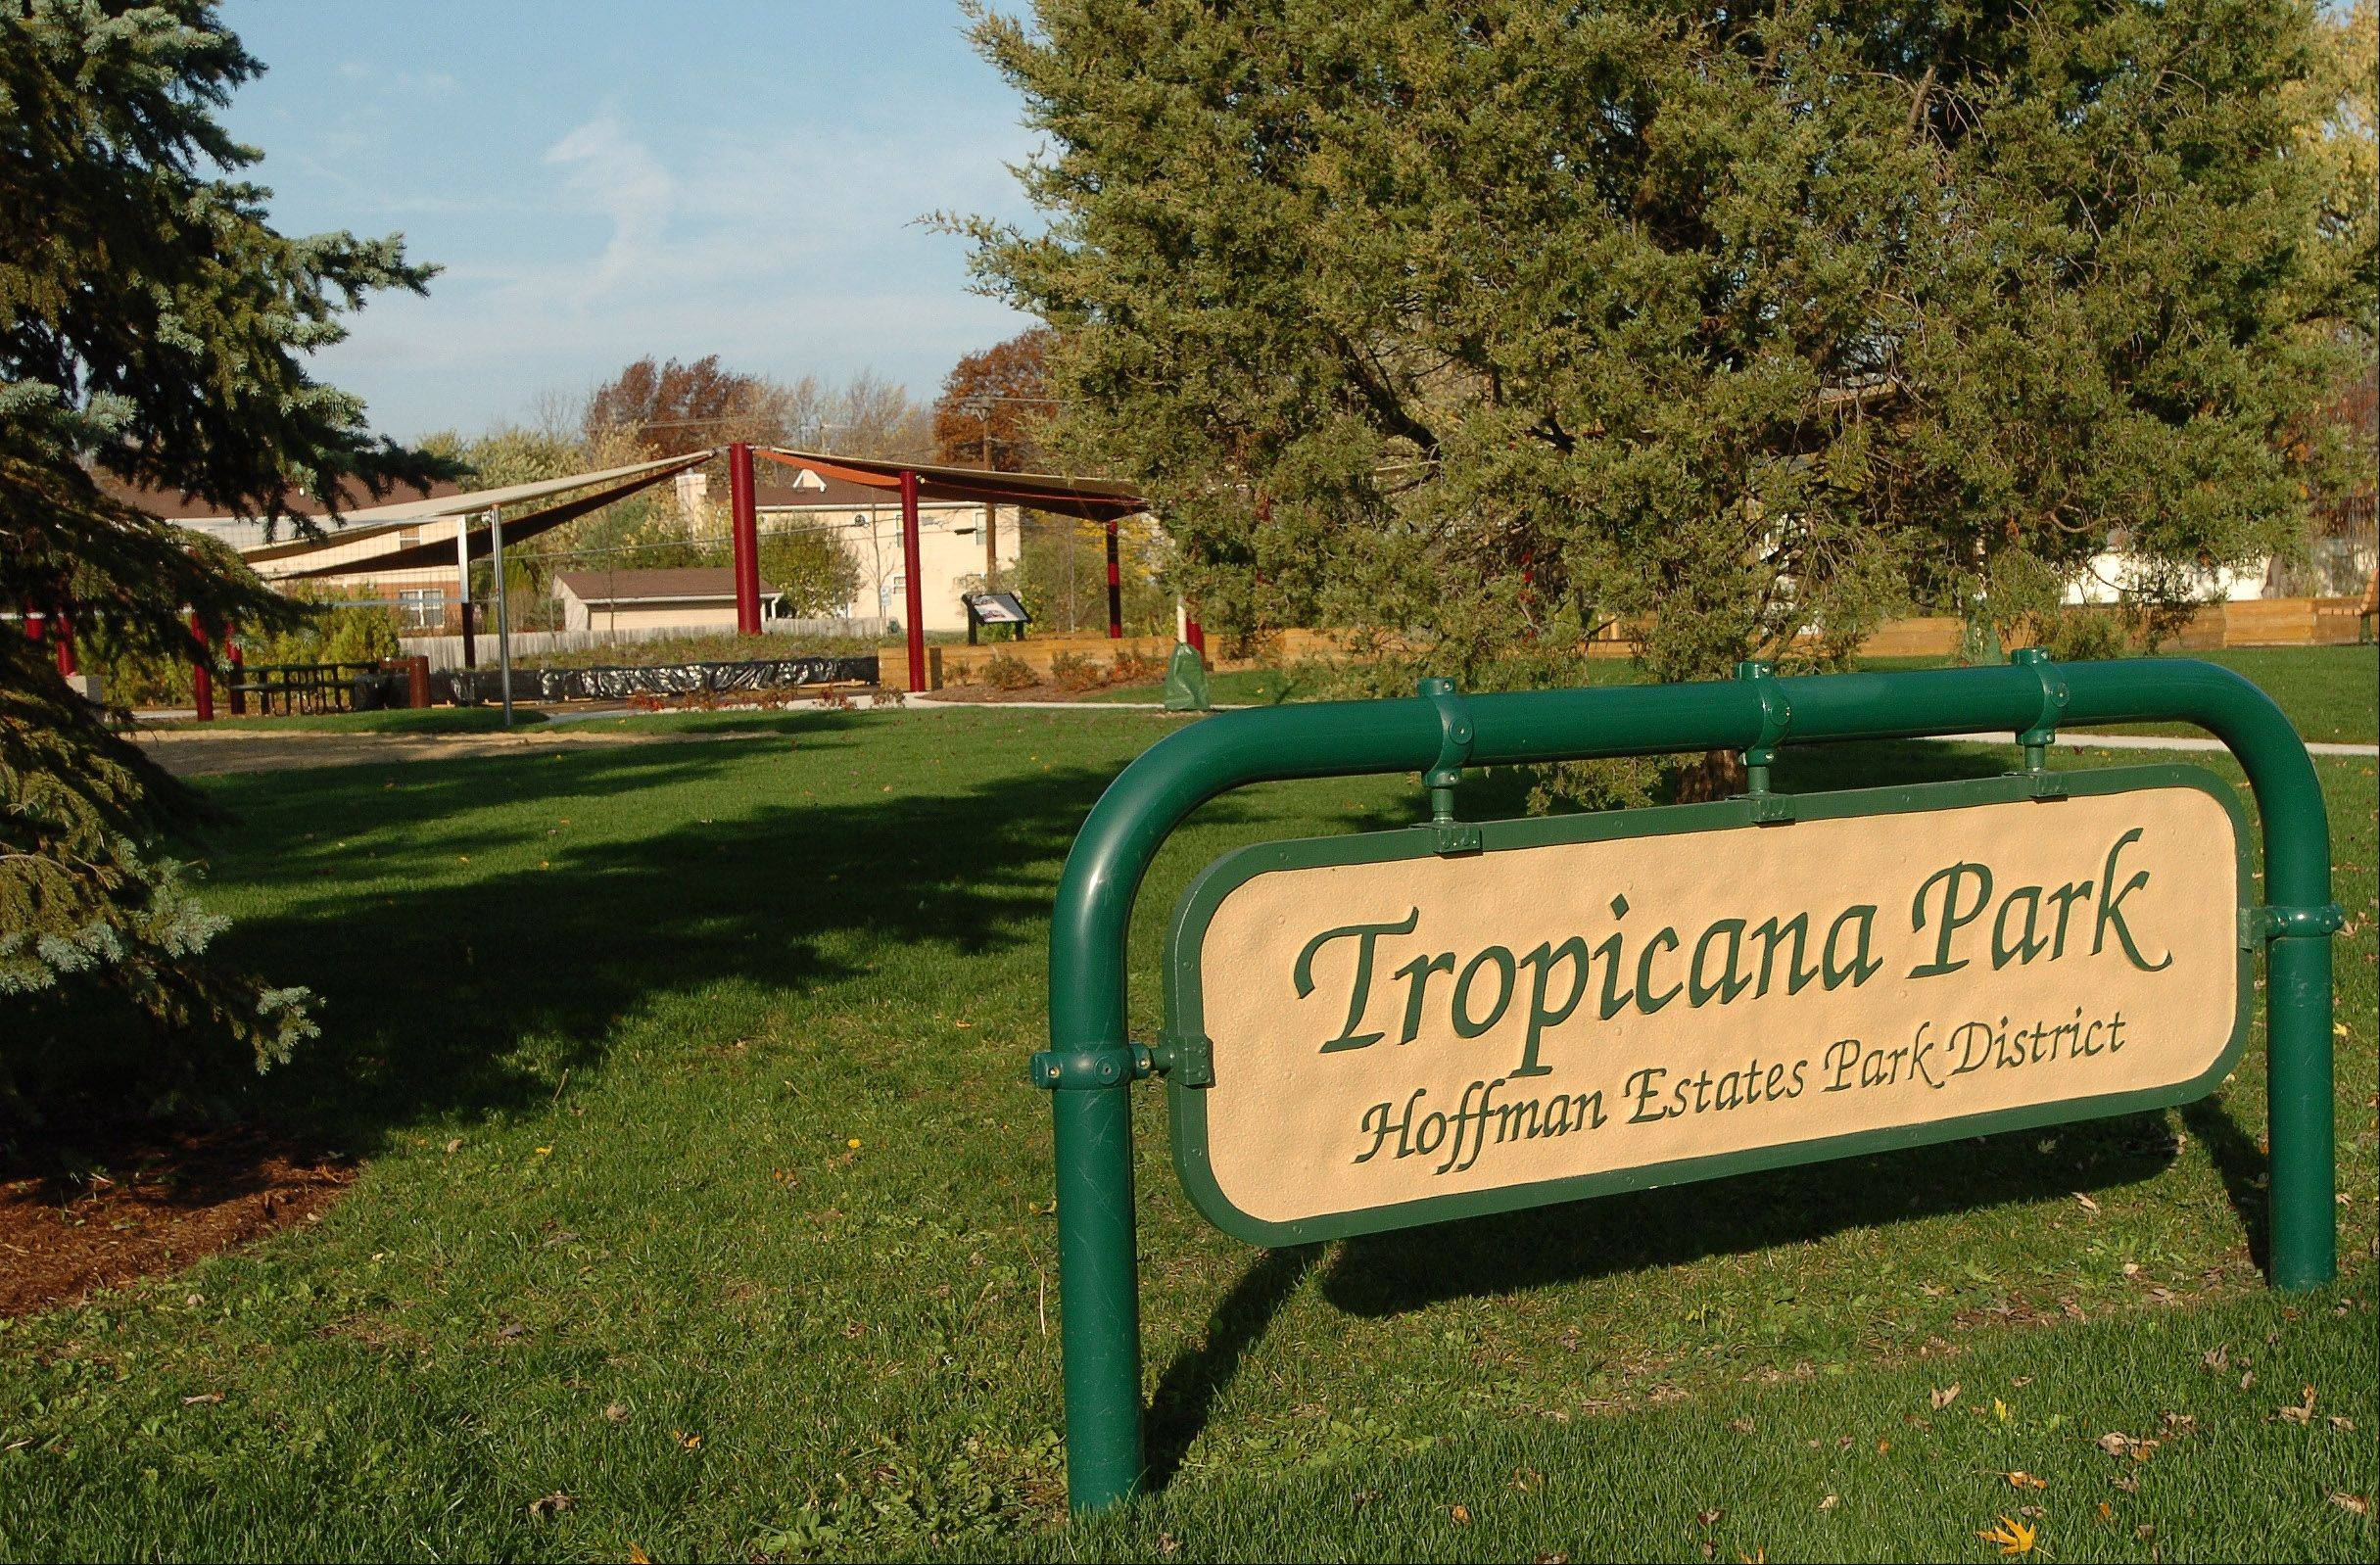 This is Tropicana Park in Hoffman Estates, built after a swim club donated property it could no longer maintain.